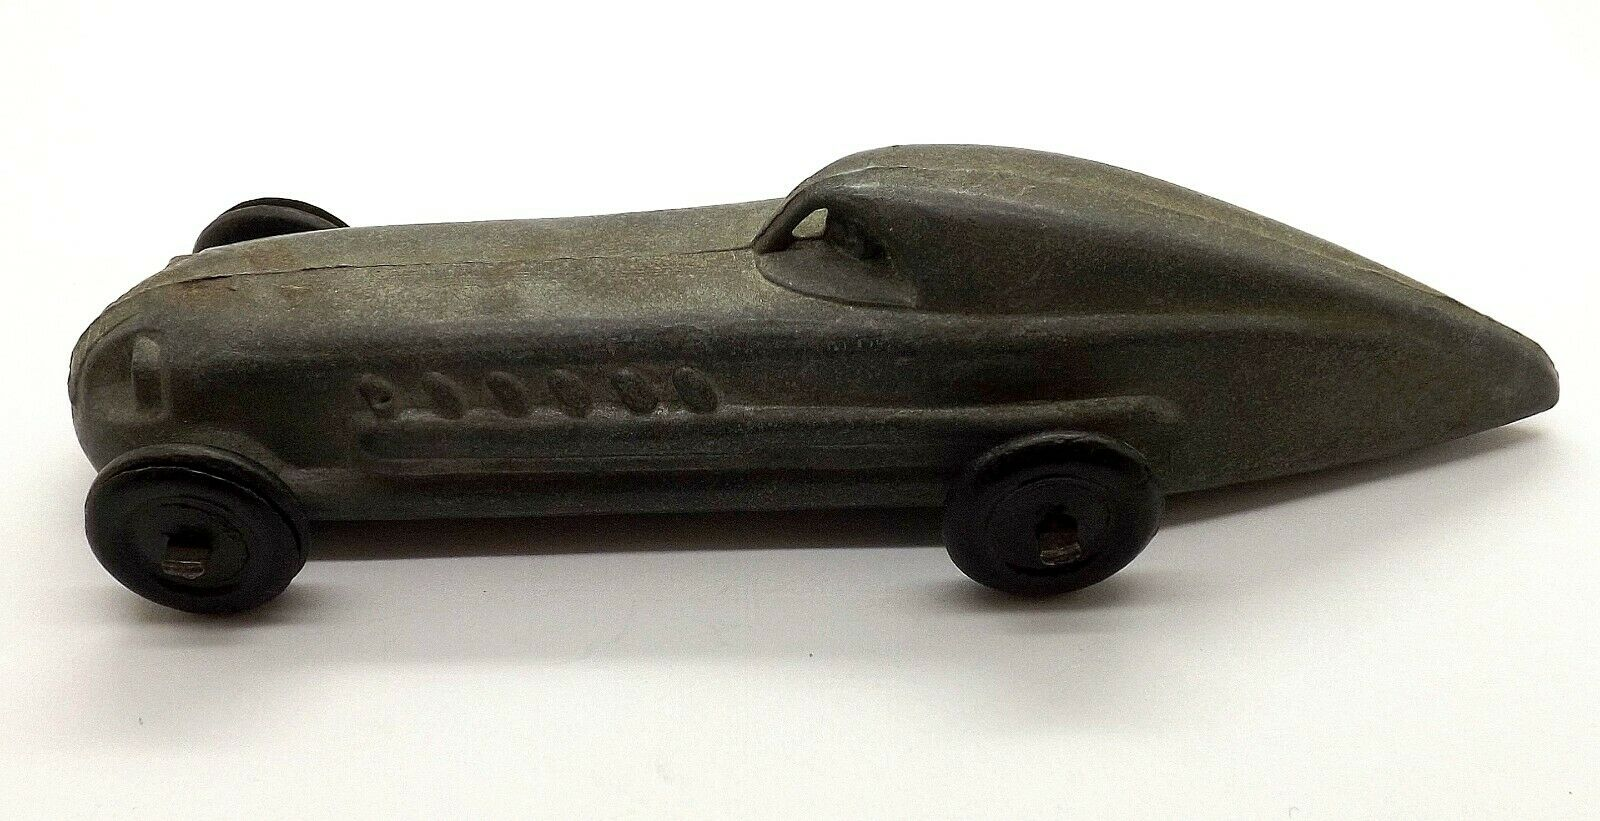 ANTIQUE 1920'S TOOTSIE OR TIP TOP TOY OR DIECAST TOY CAR RACE CAR